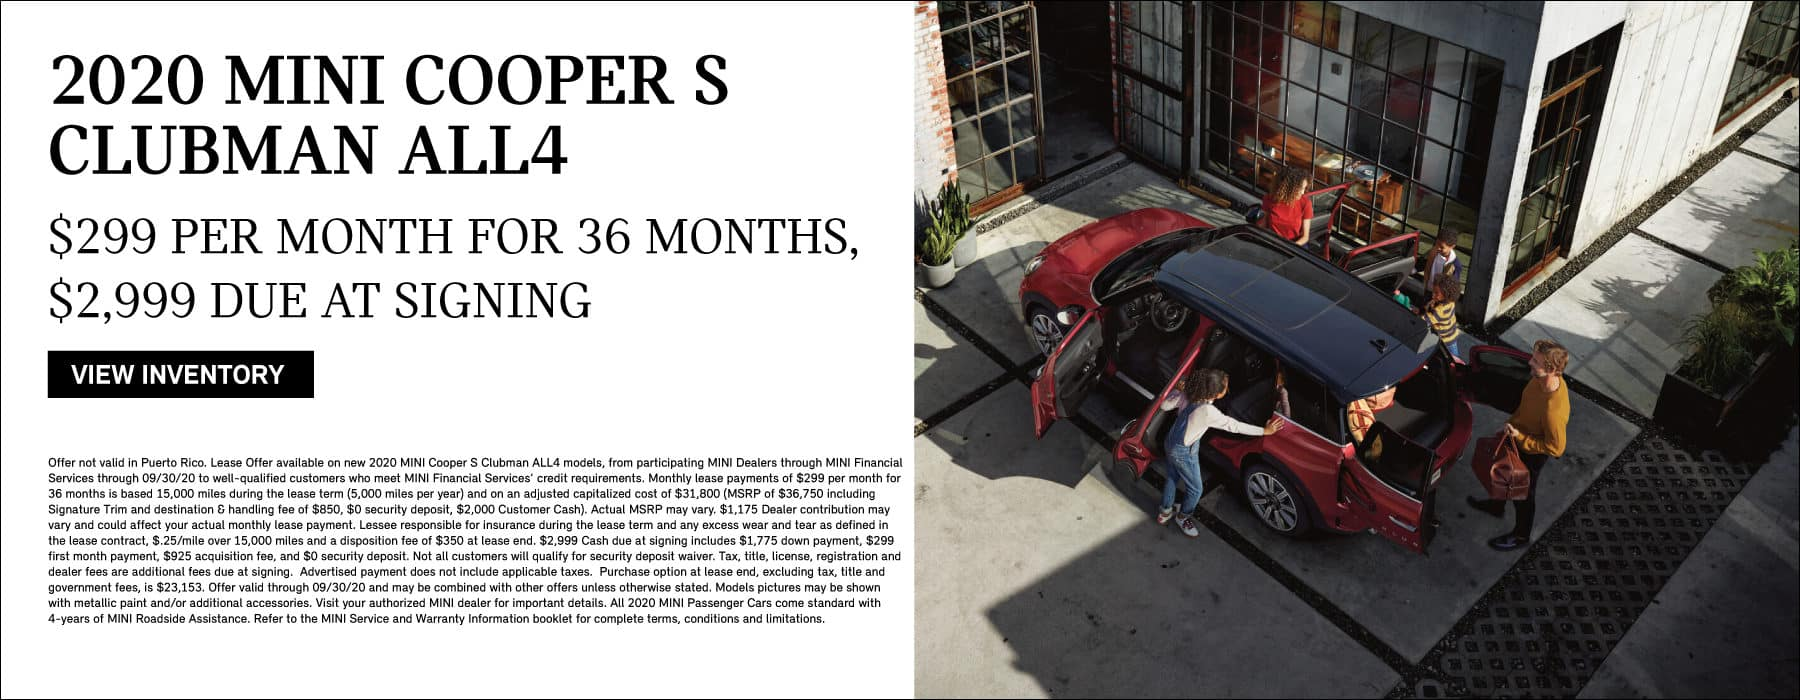 2020 MINI COOPER S CLUBMAN ALL4. LEASE FOR $299 PER MONTH FOR 36 MONTHS, $2999 DUE AT SIGNING